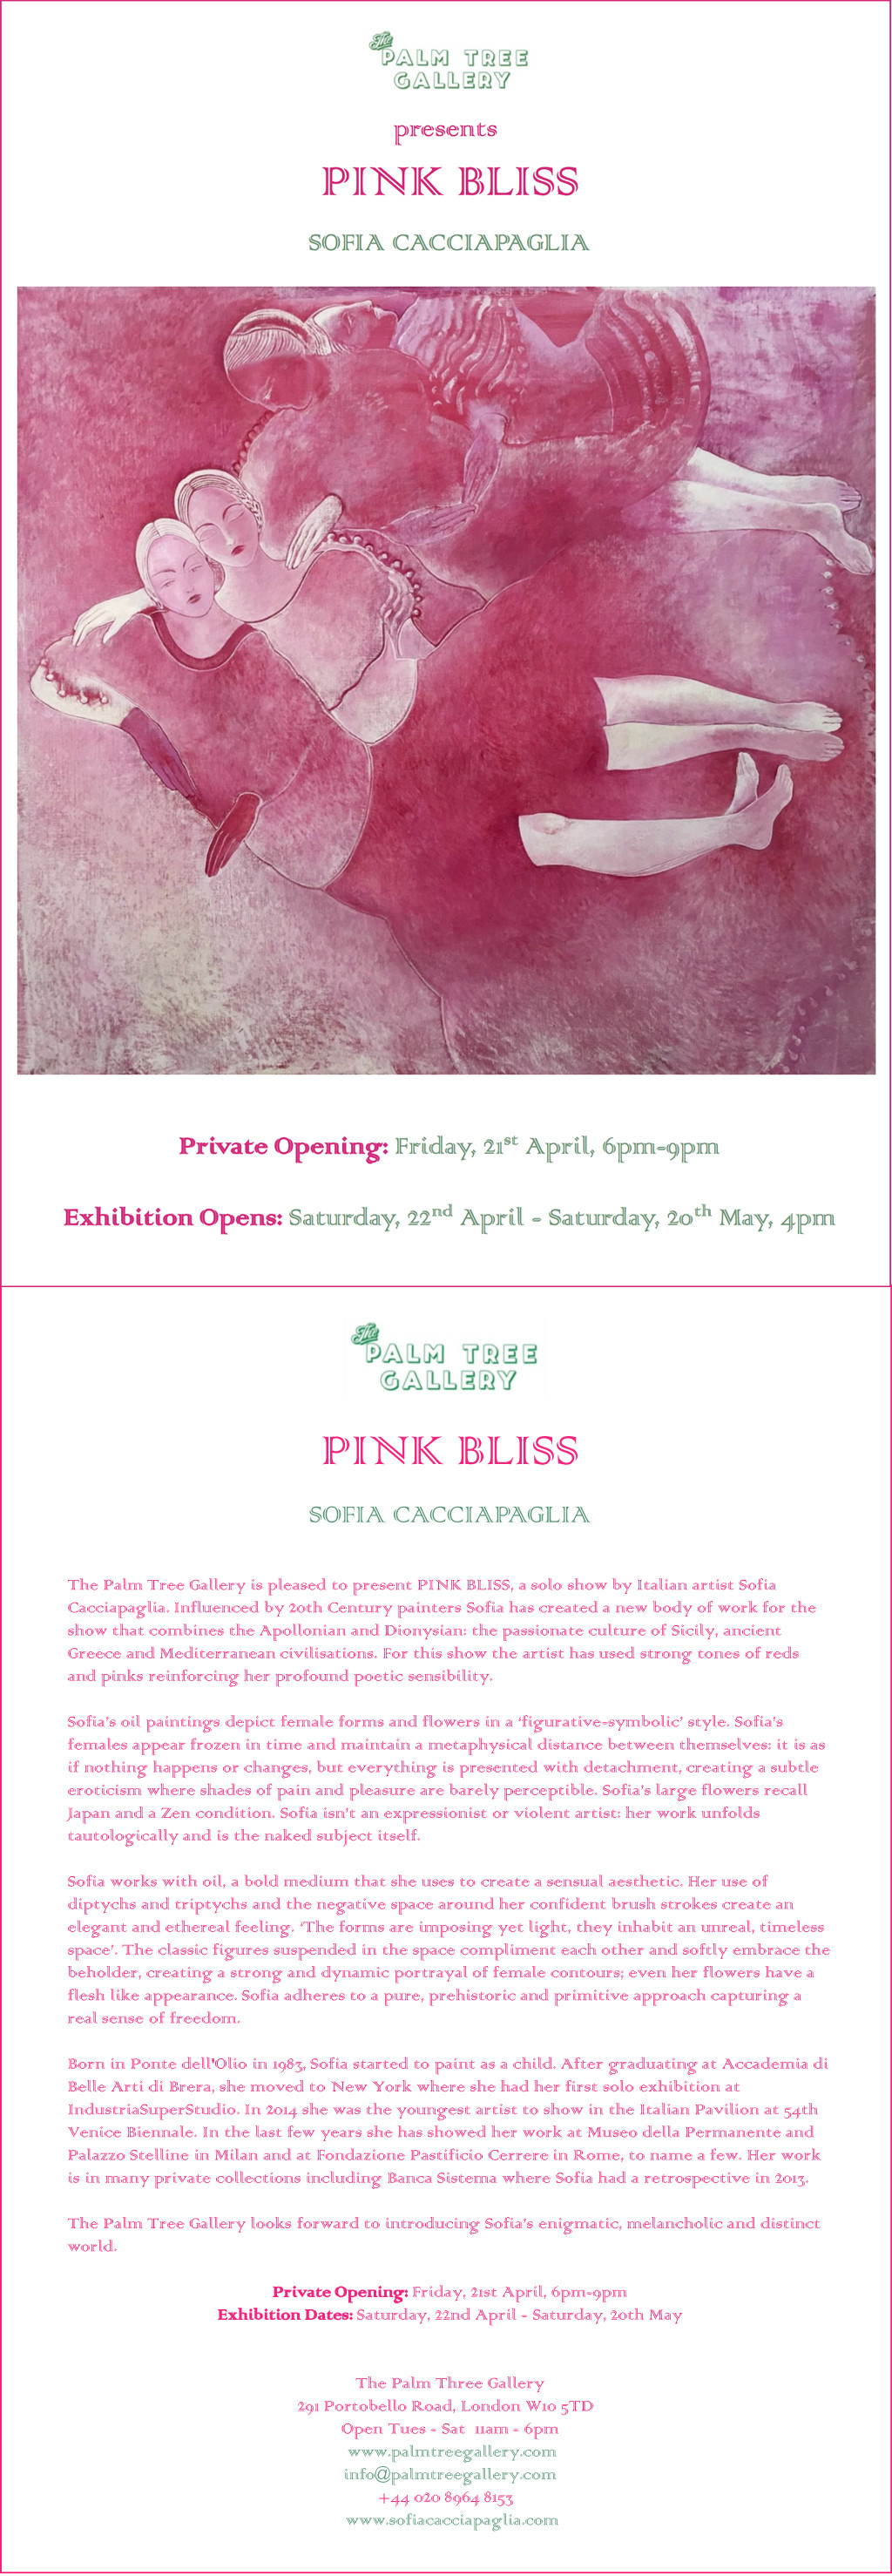 Pink Bliss Press release